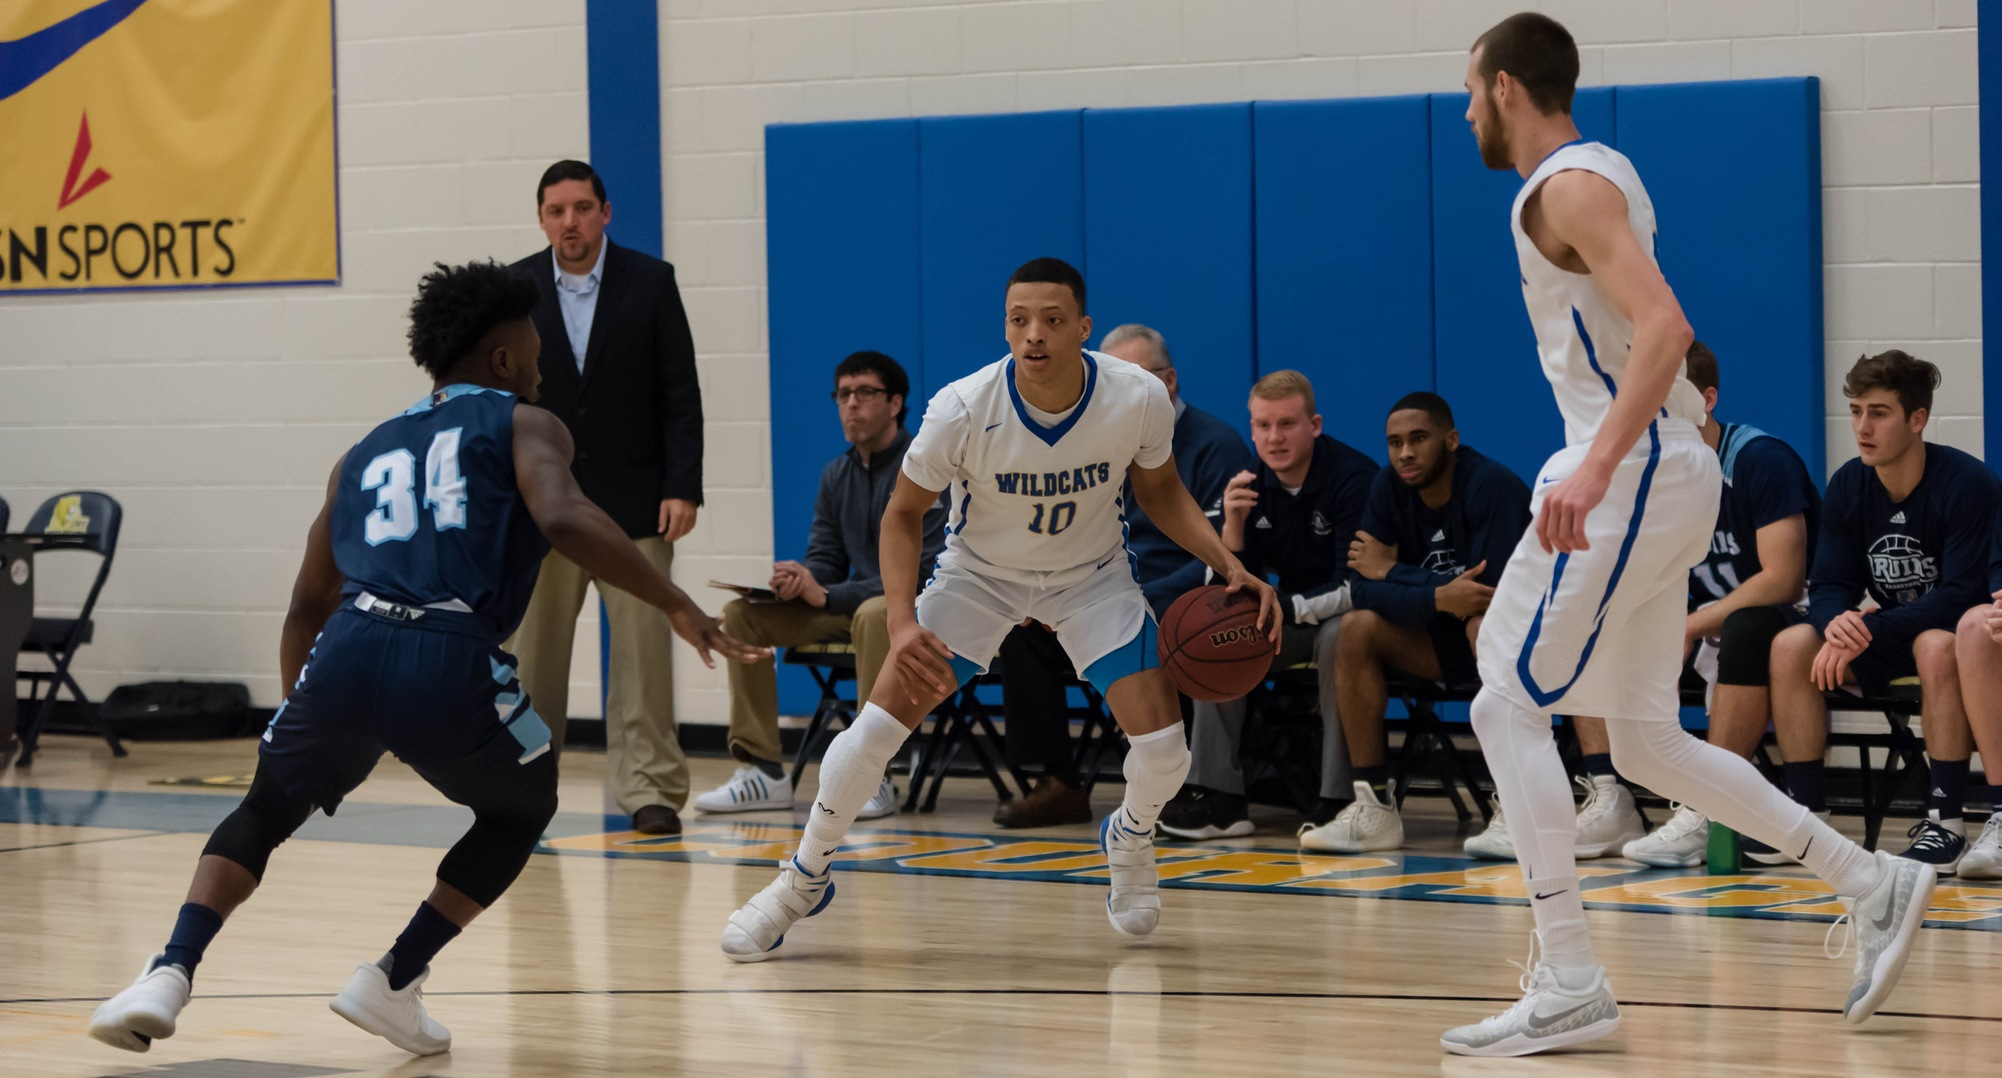 Men's Basketball Stays Hot With Road Win Over Bruins